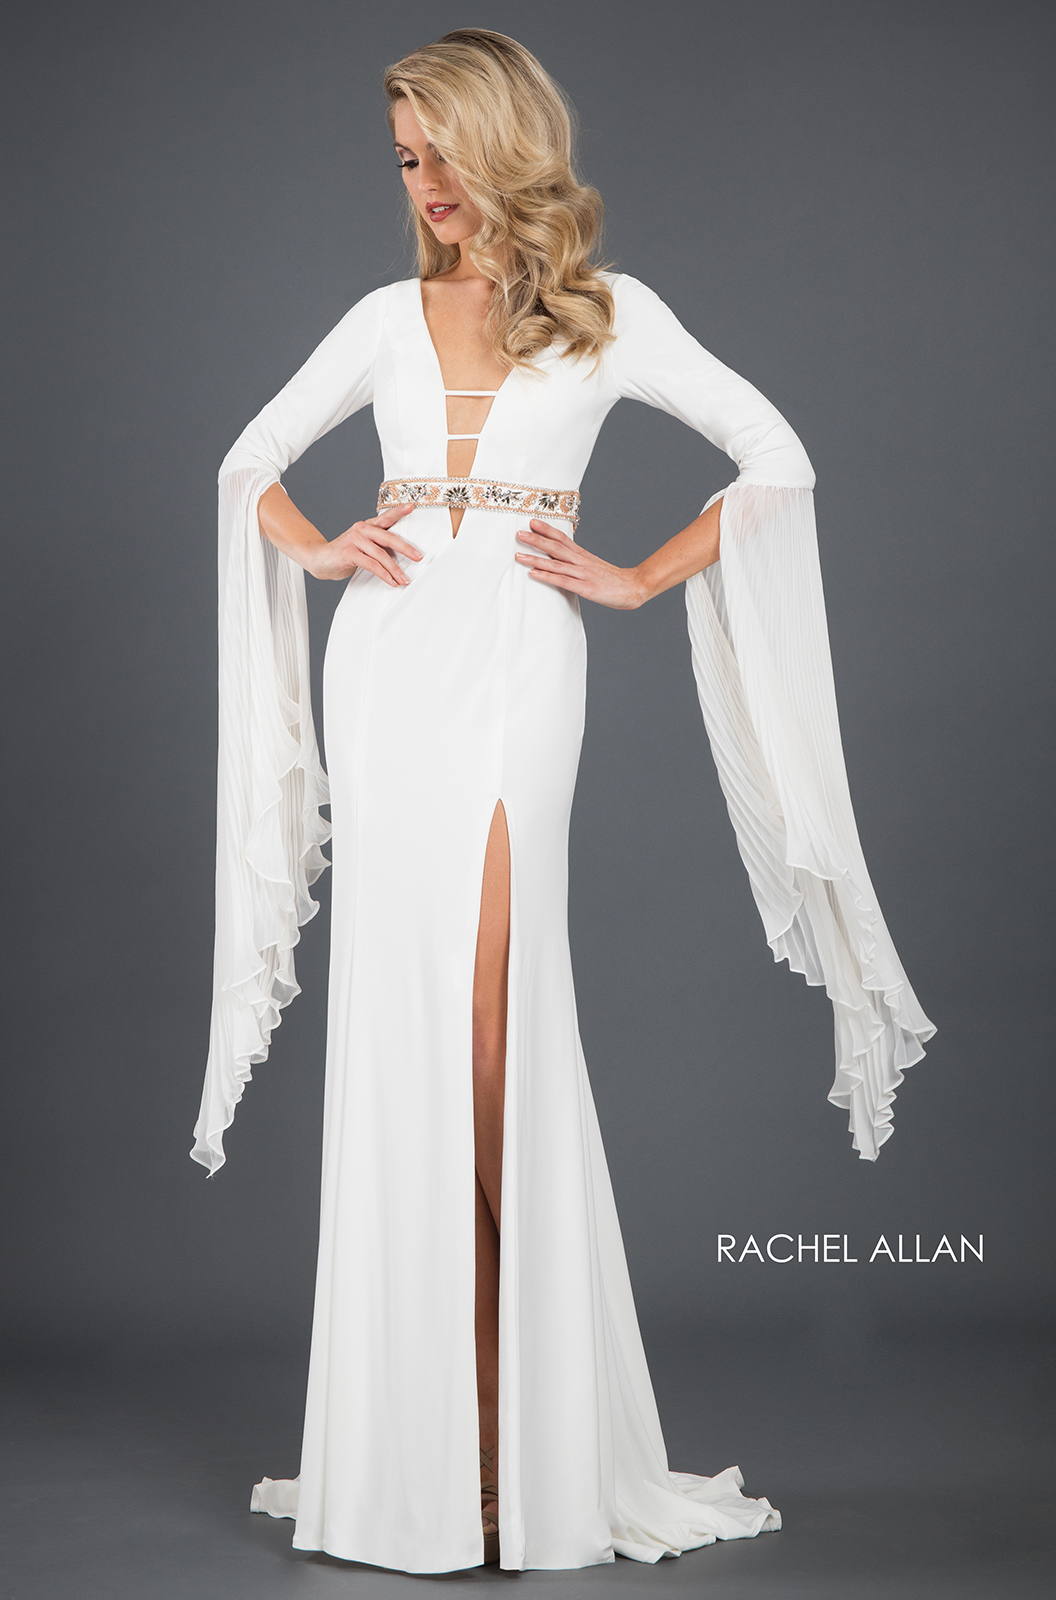 V-Neck Fitted Long Couture Dresses in White Color